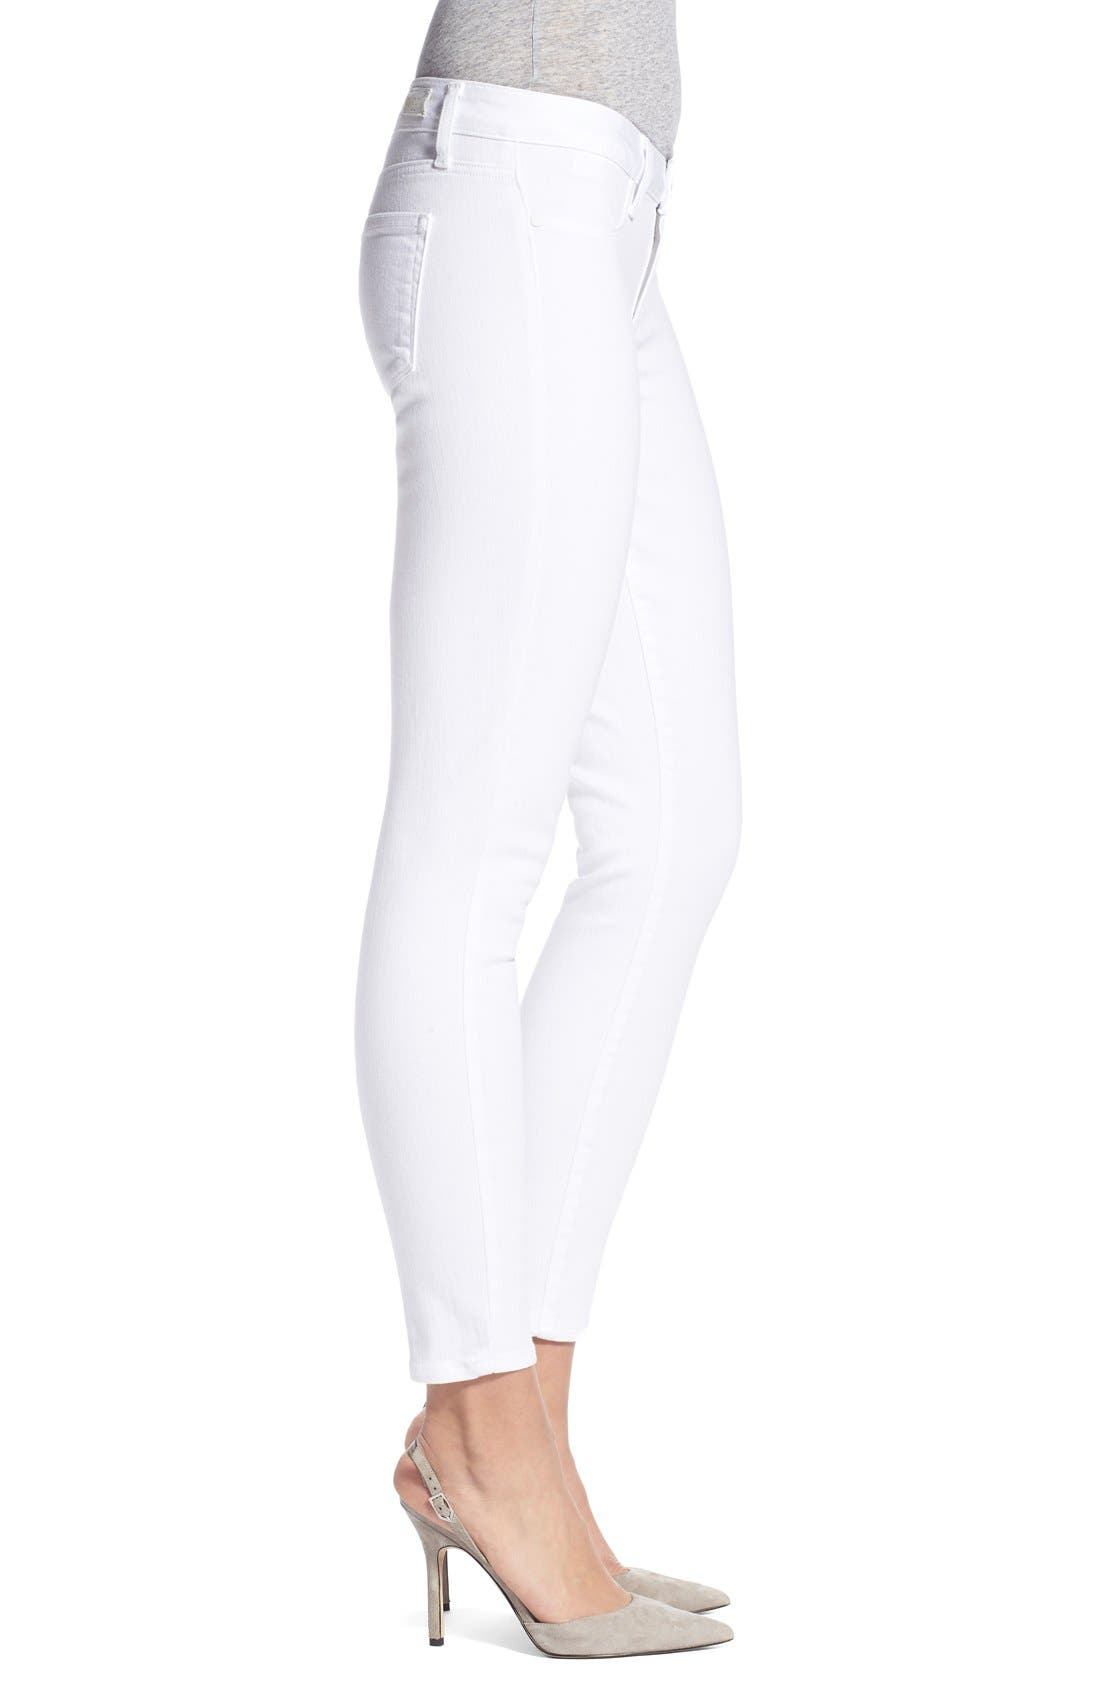 PAIGE, 'Verdugo' Ankle Skinny Jeans, Alternate thumbnail 7, color, ULTRA WHITE